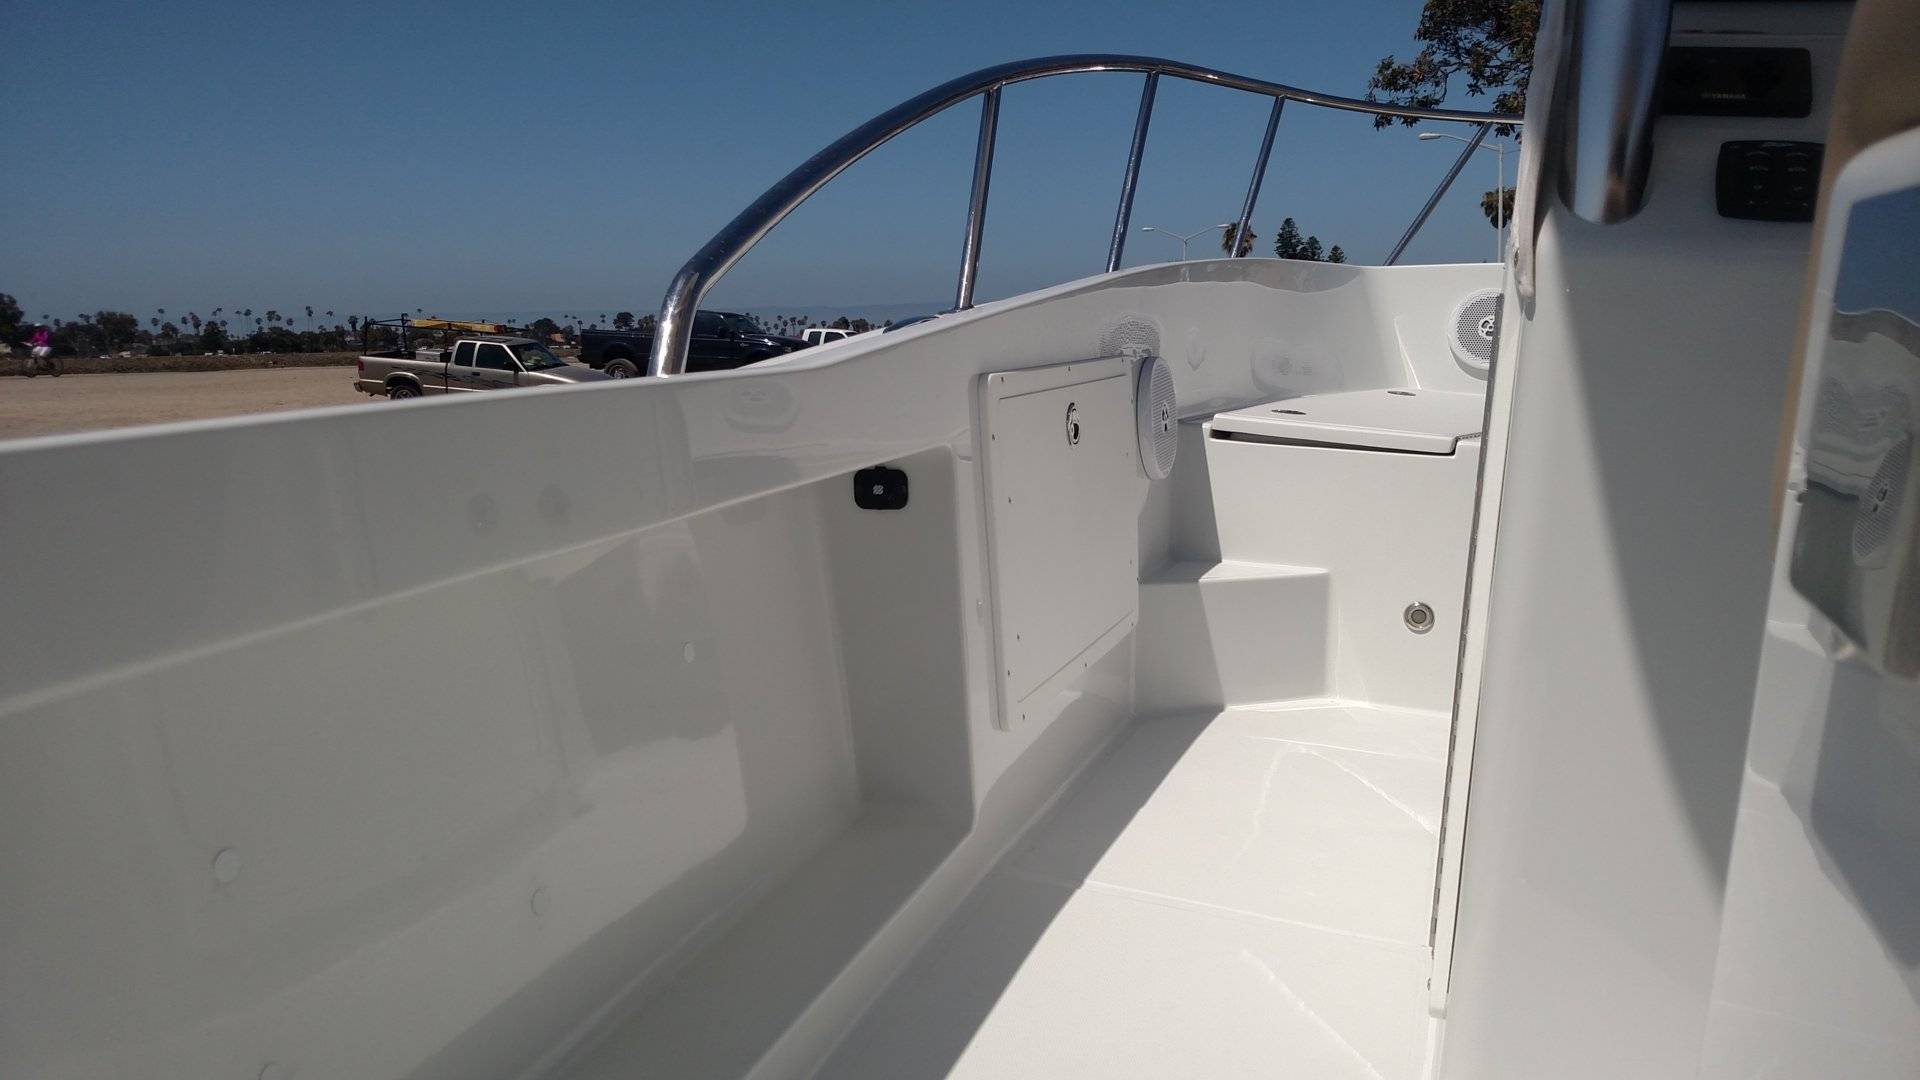 Boat Pics - Port Length Shot Interior.jpg